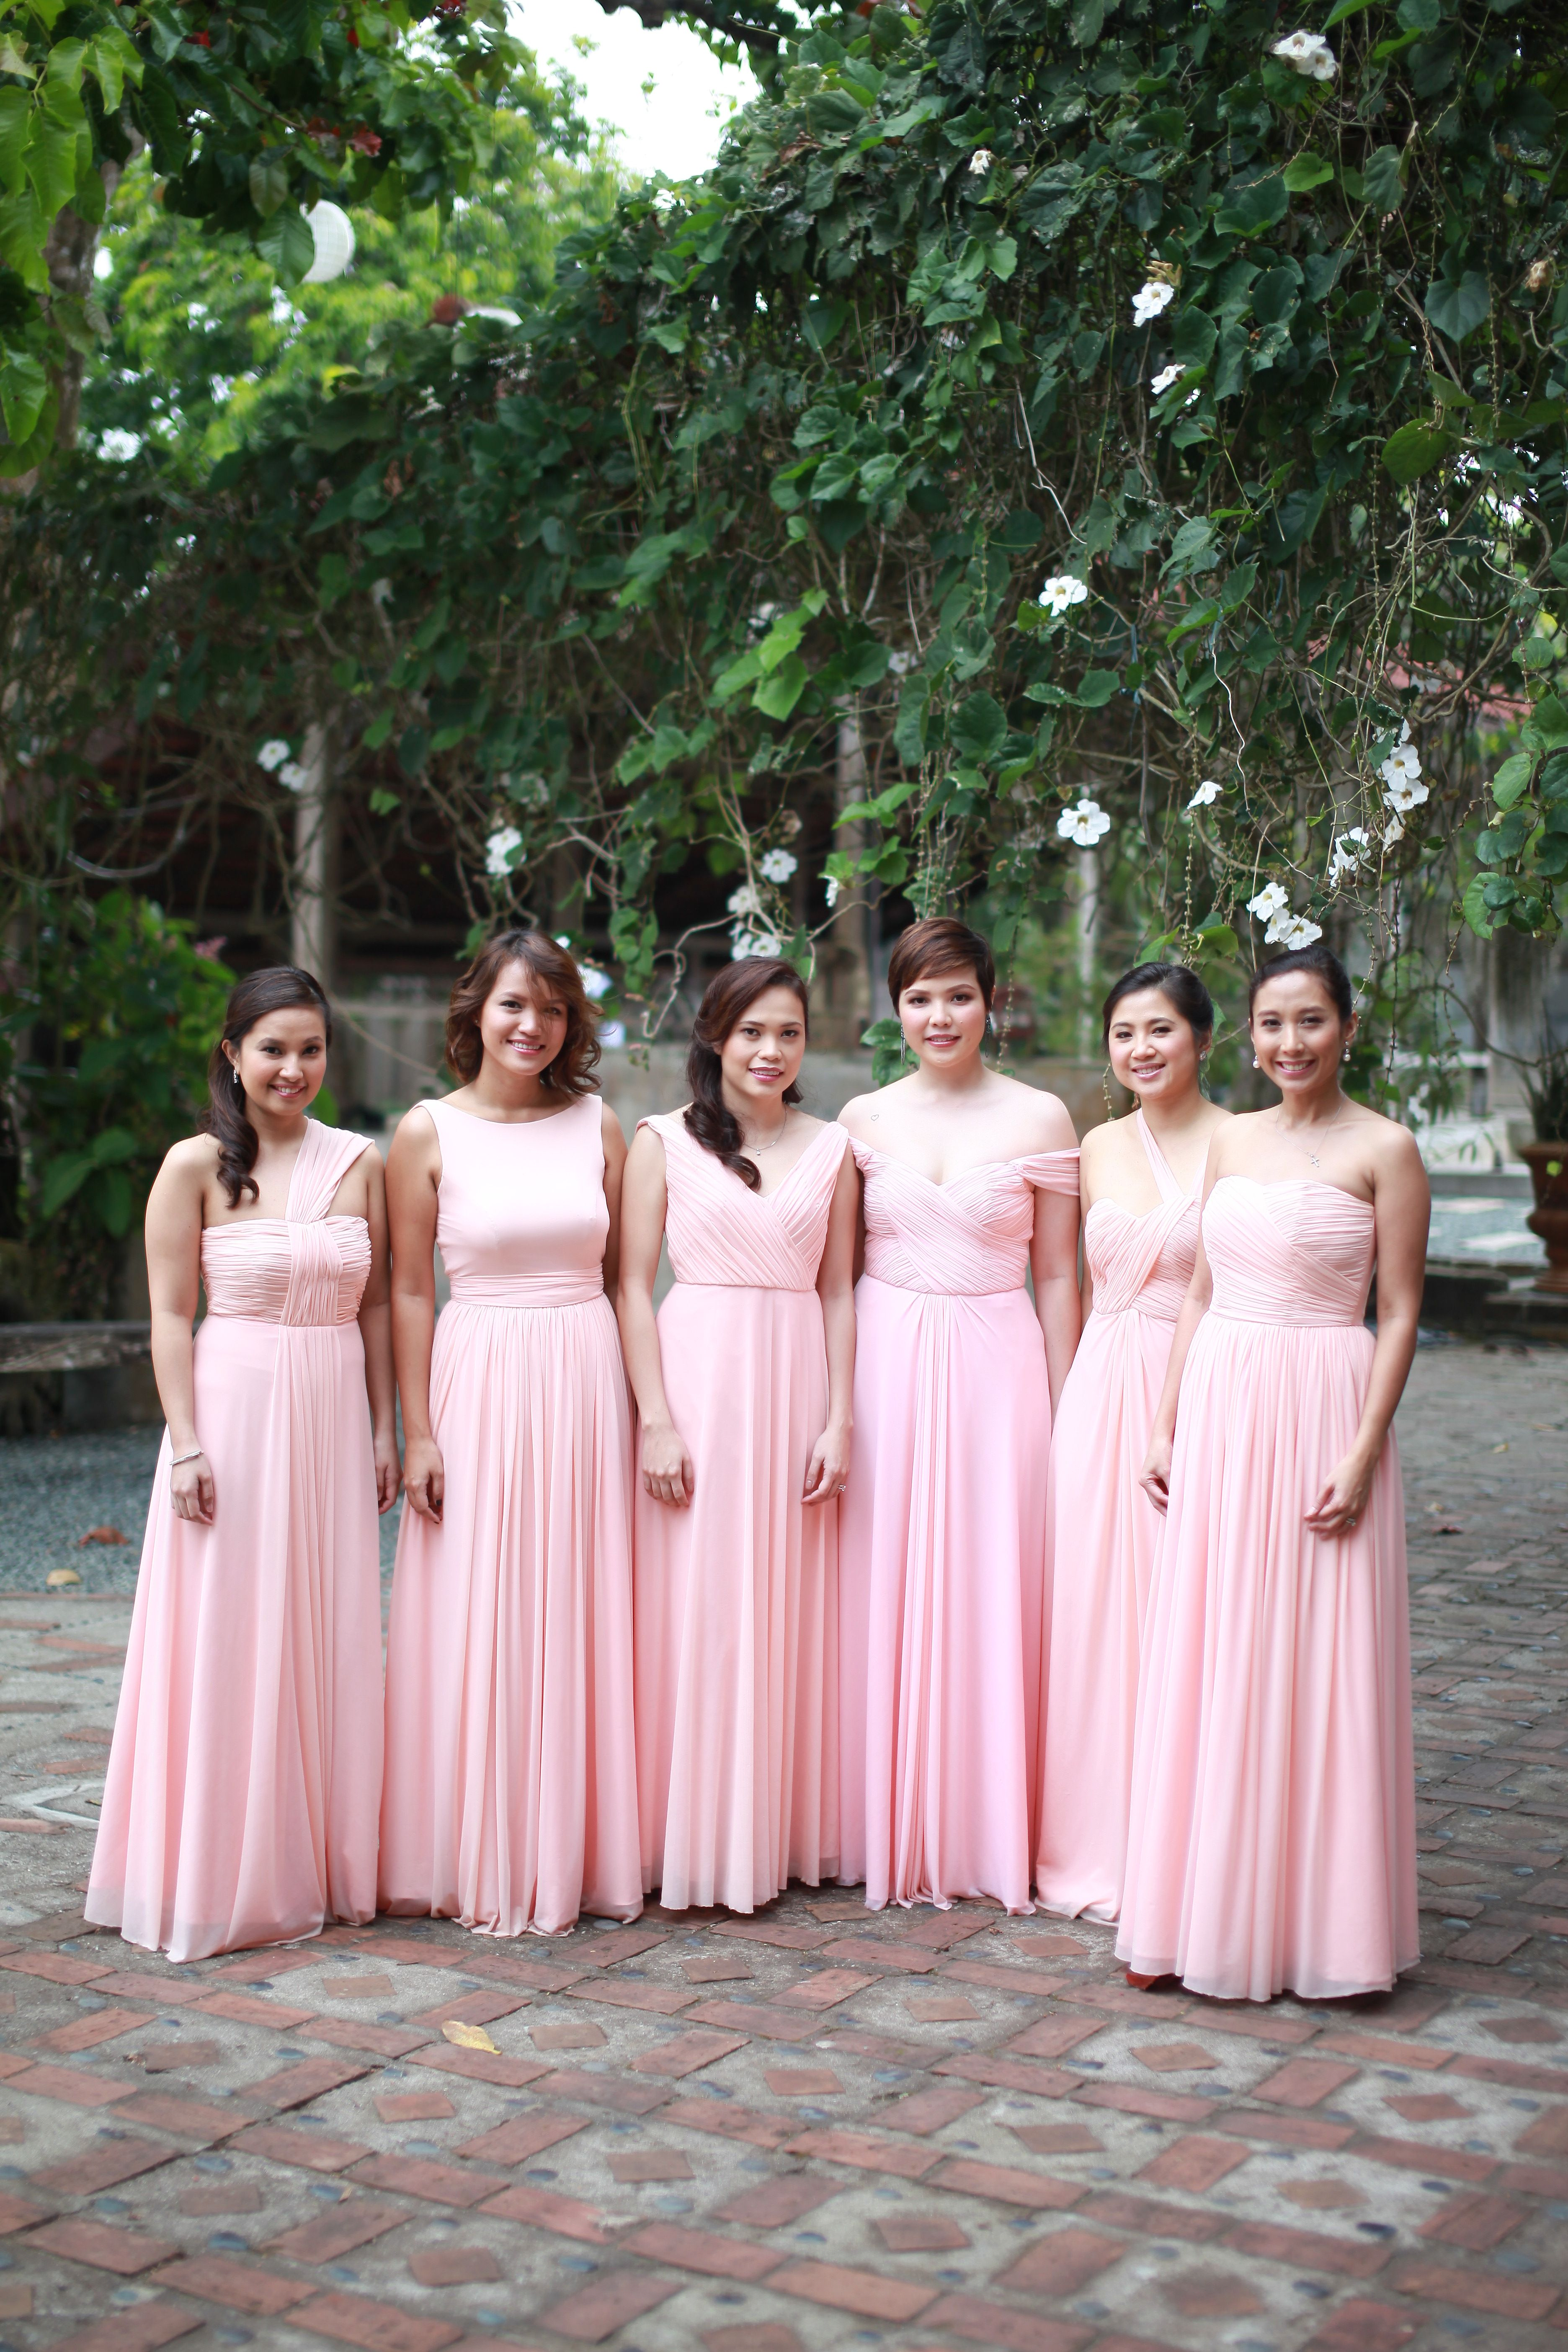 Flowy and Drapes | Wedding Gowns & Entourage Gowns | Pinterest ...